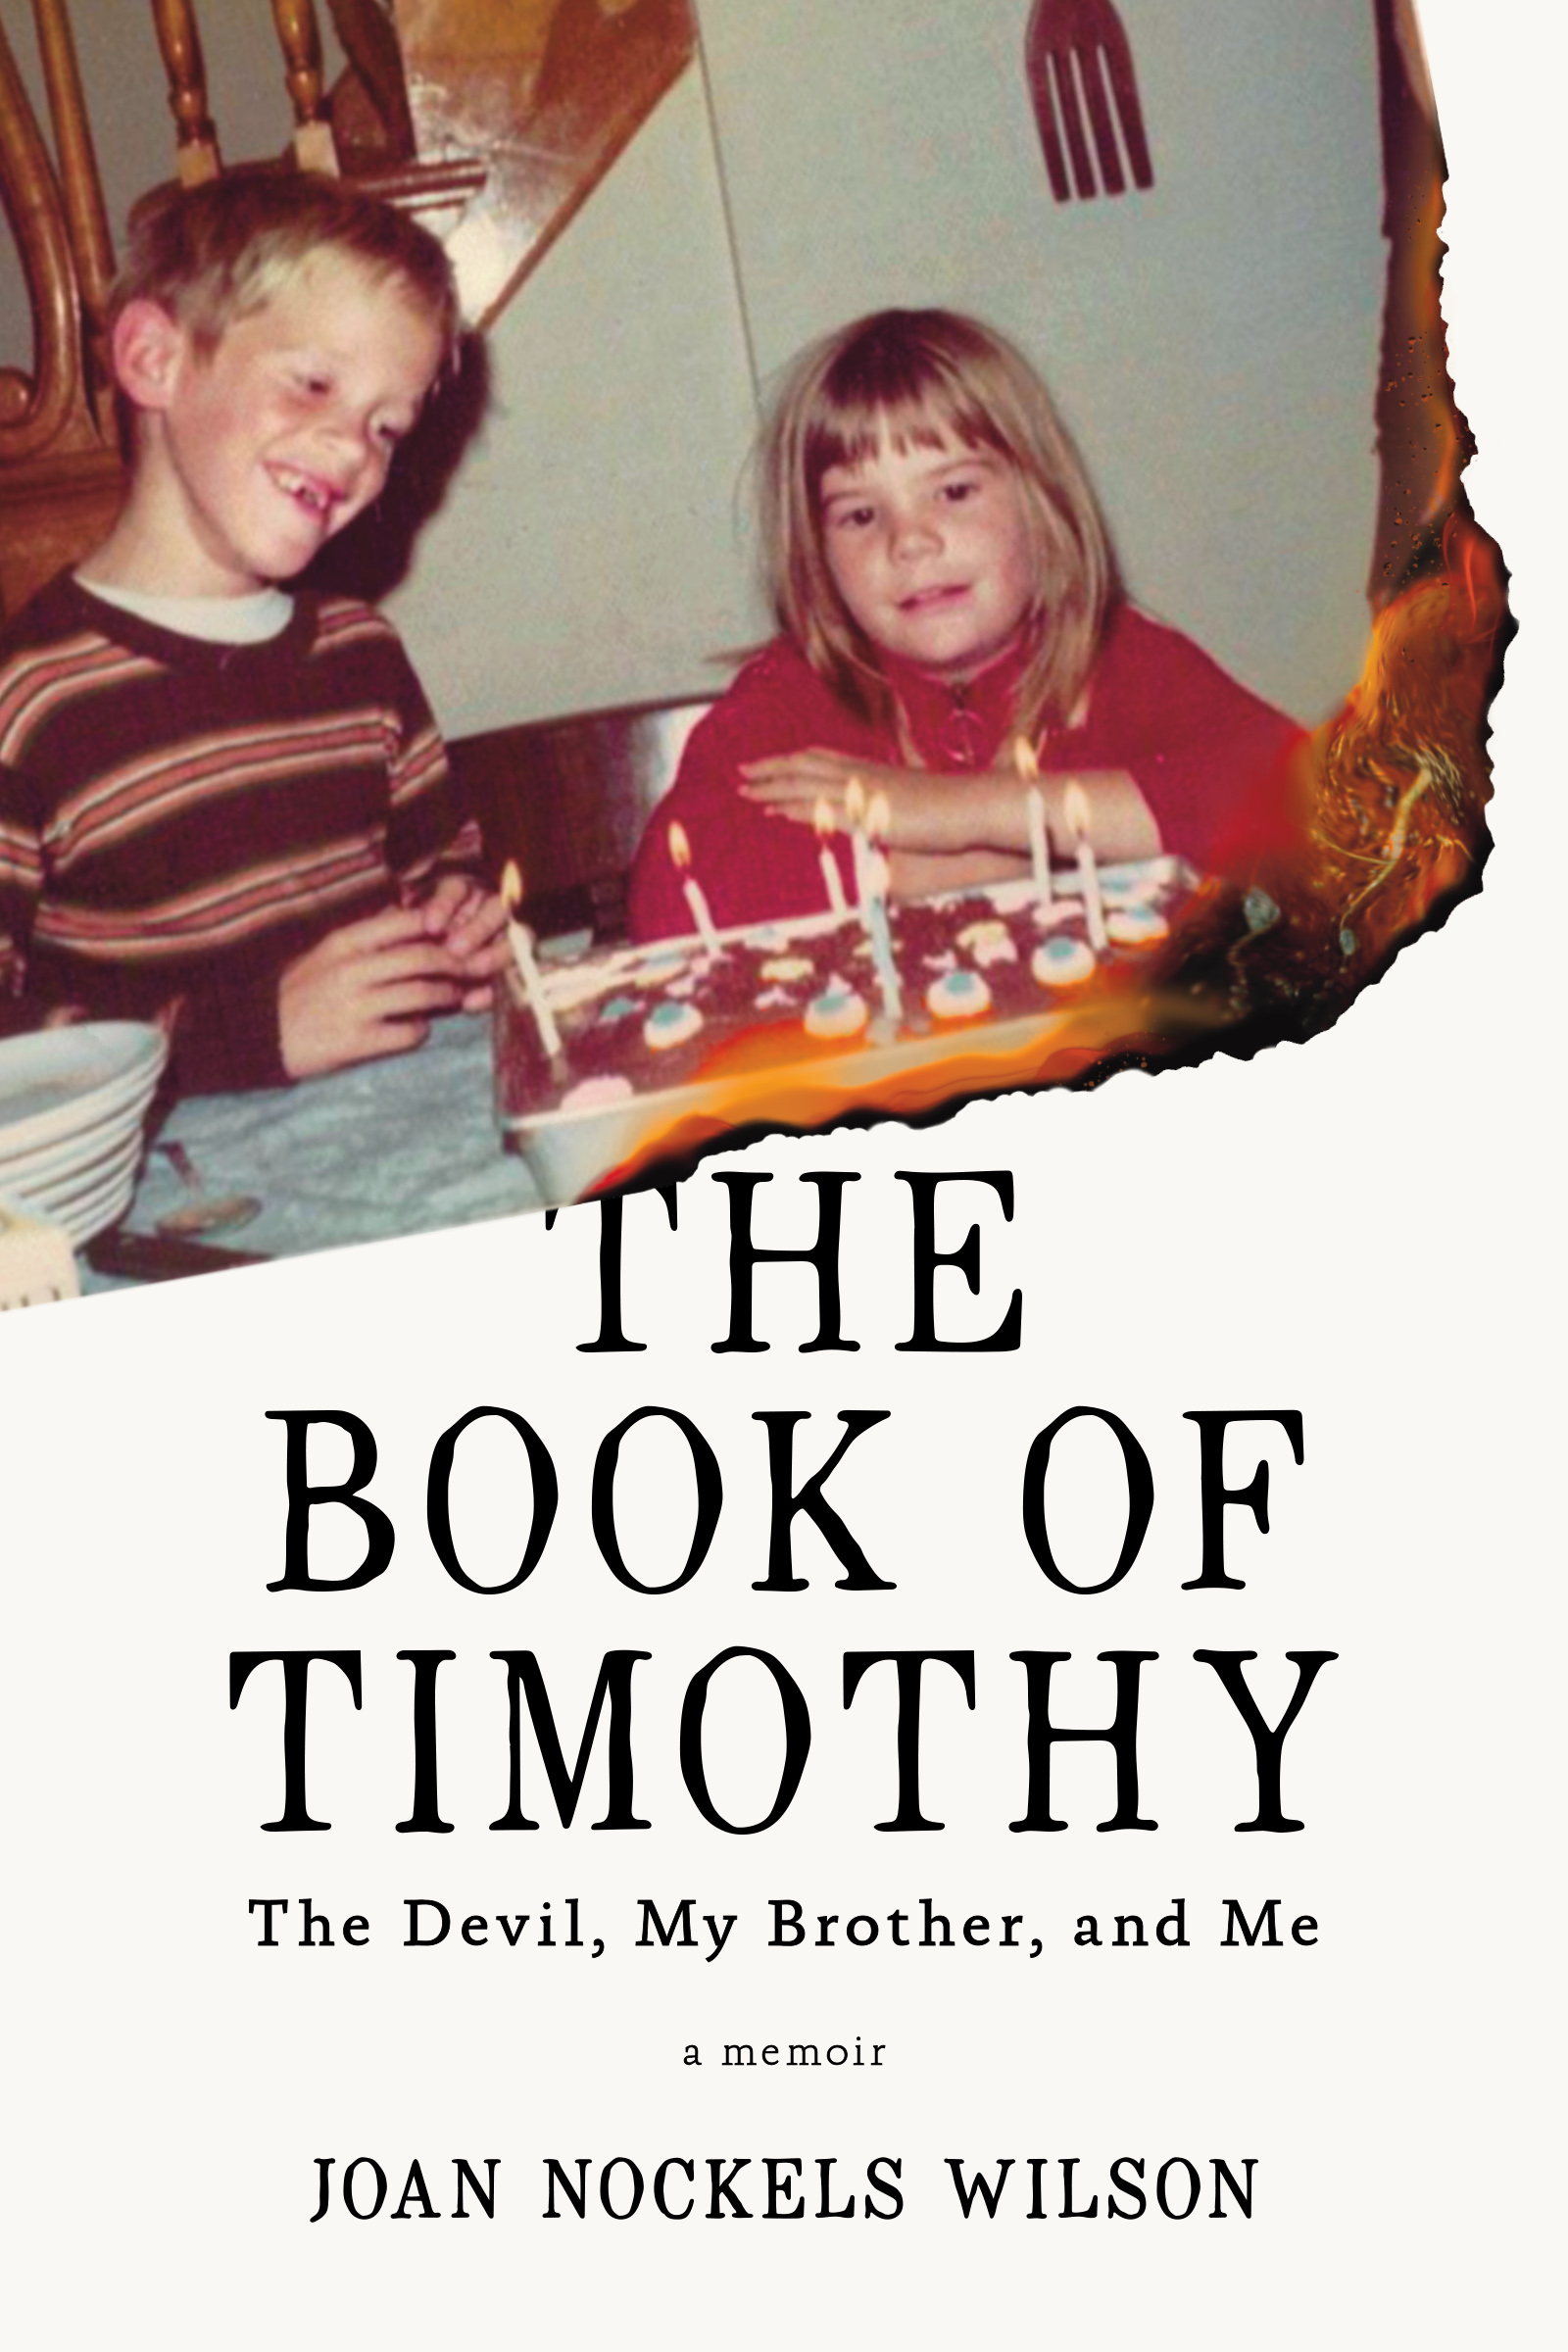 An off-white cover with black script in the center that reads The Book of Timothy: The Devil, My Brother and Me a memoir by Joan Nockels Wilson, with a photograph at the top of a brother and sister sitting around a birthday cake.